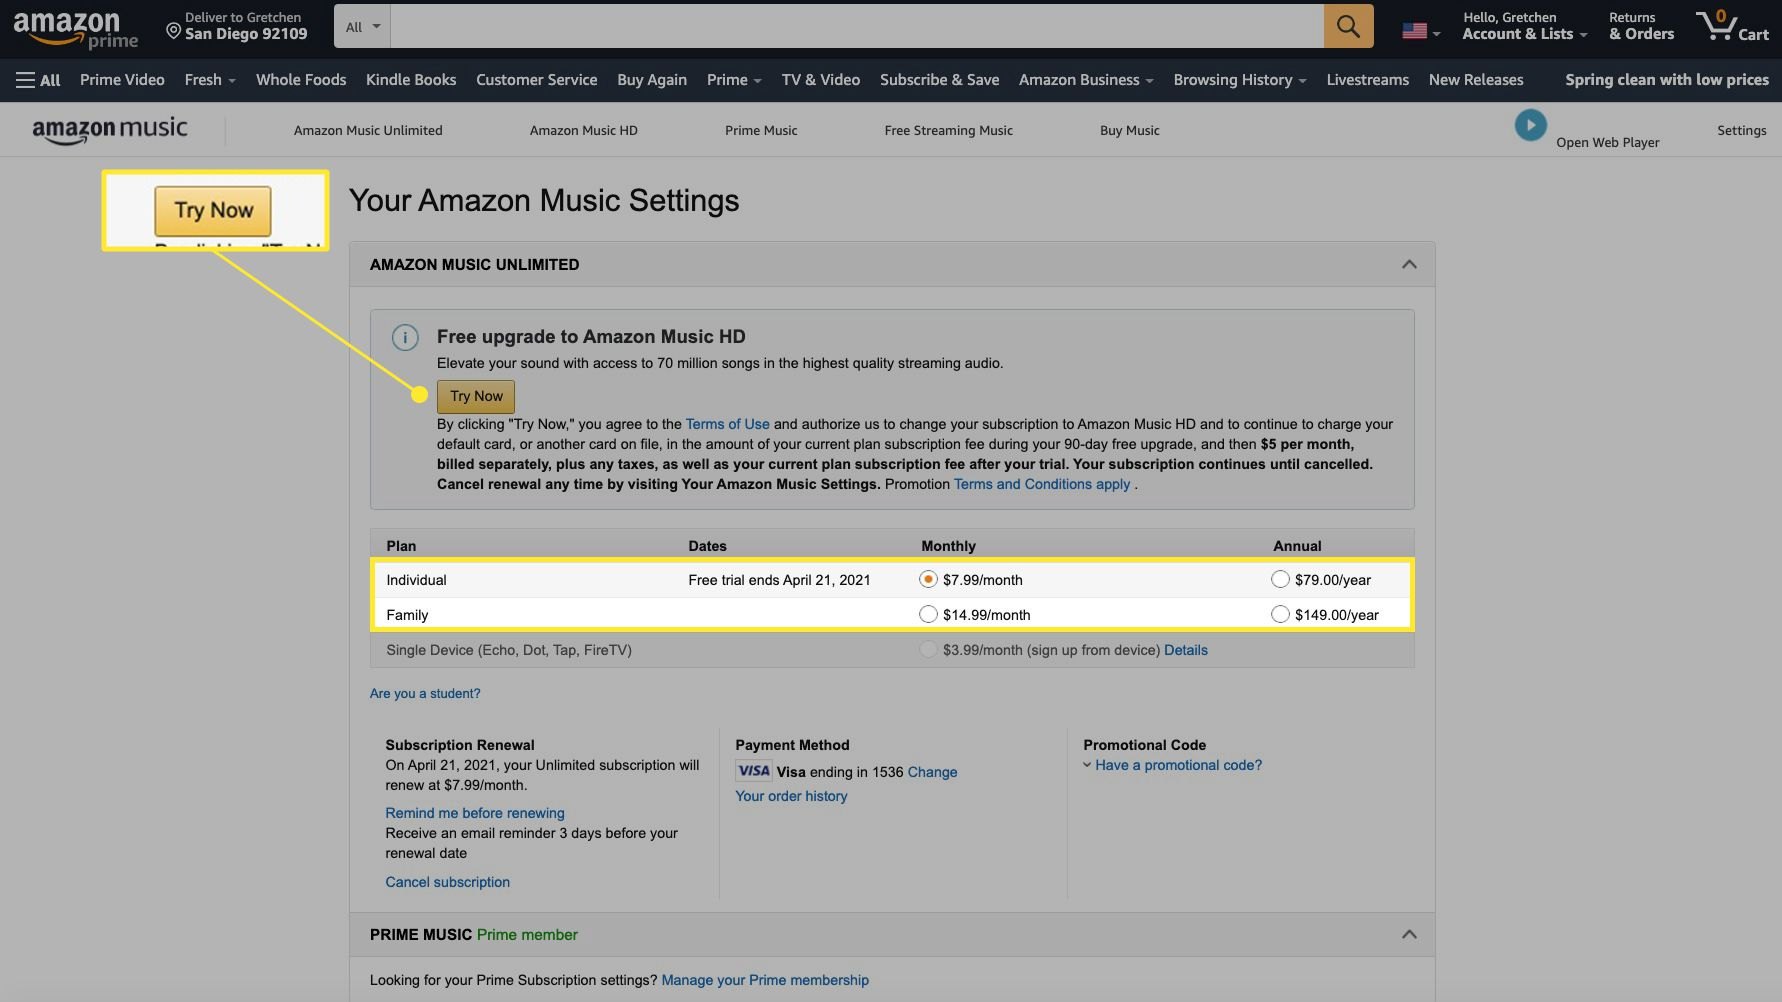 Amazon Music settings with plans and